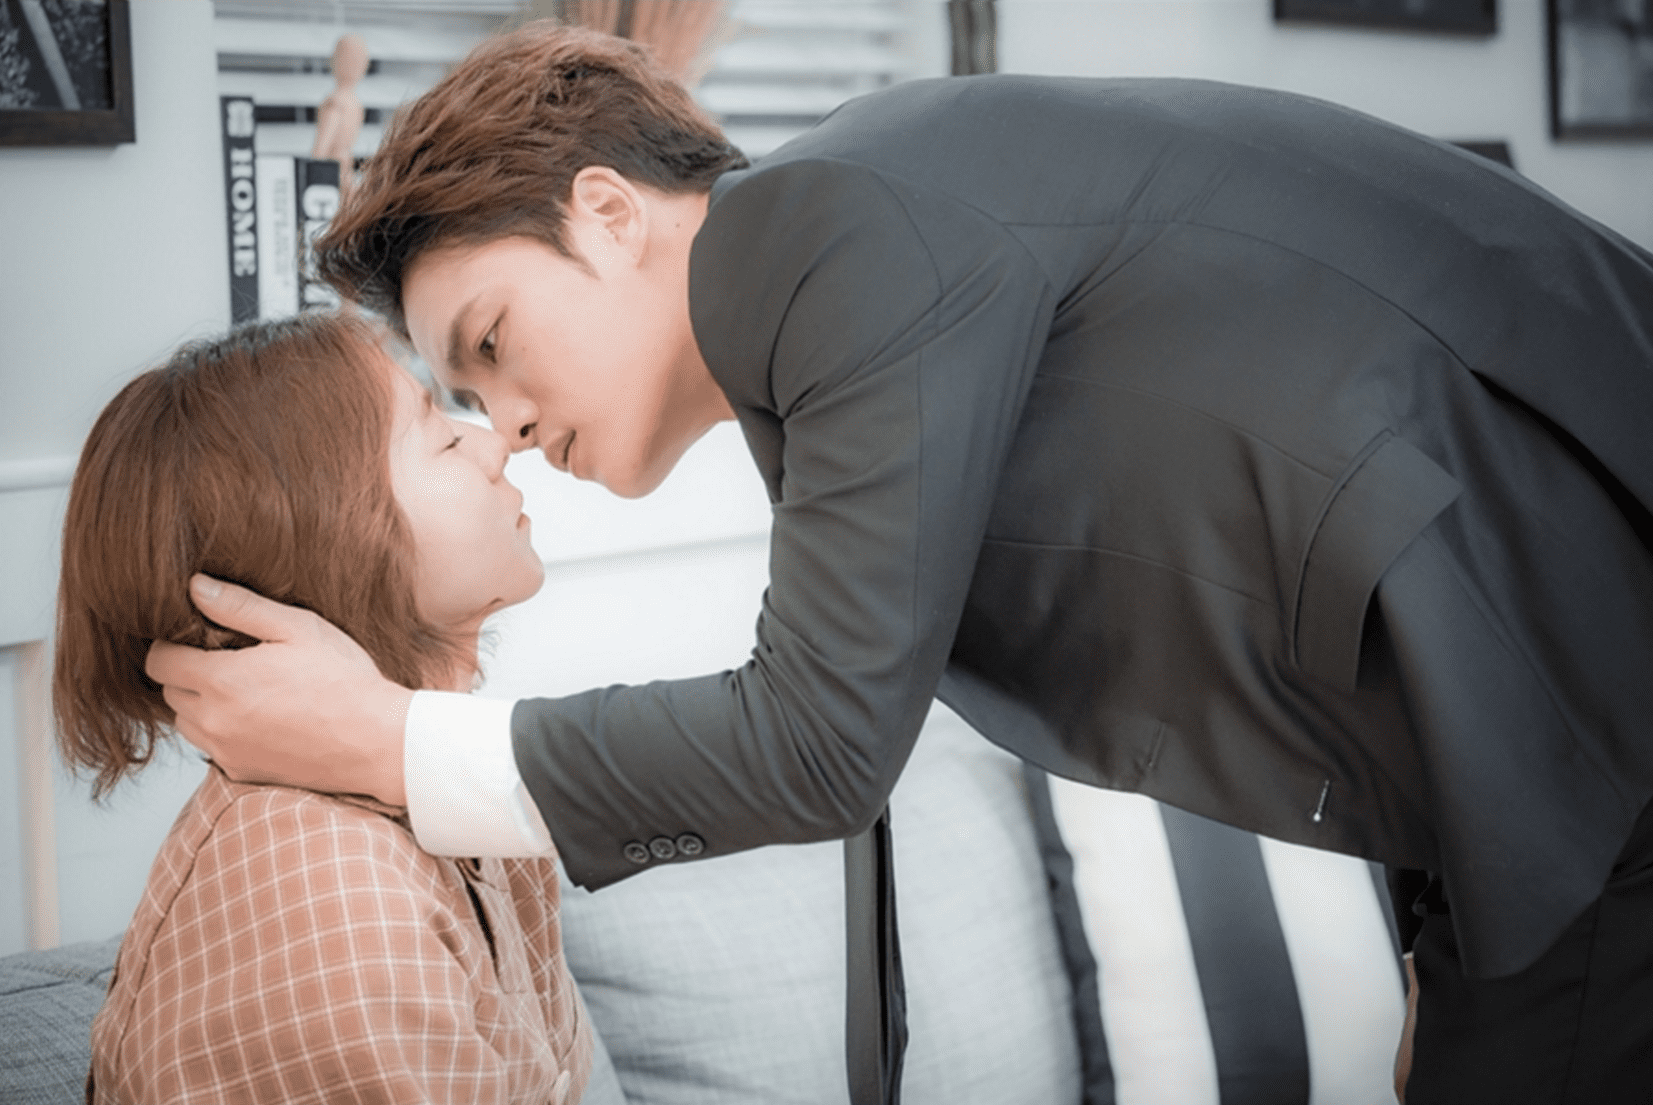 """Manhole"" Teases An Awkward Situation Between UEE, Kim Jaejoong, And Jang Mi Kwan In Stills"